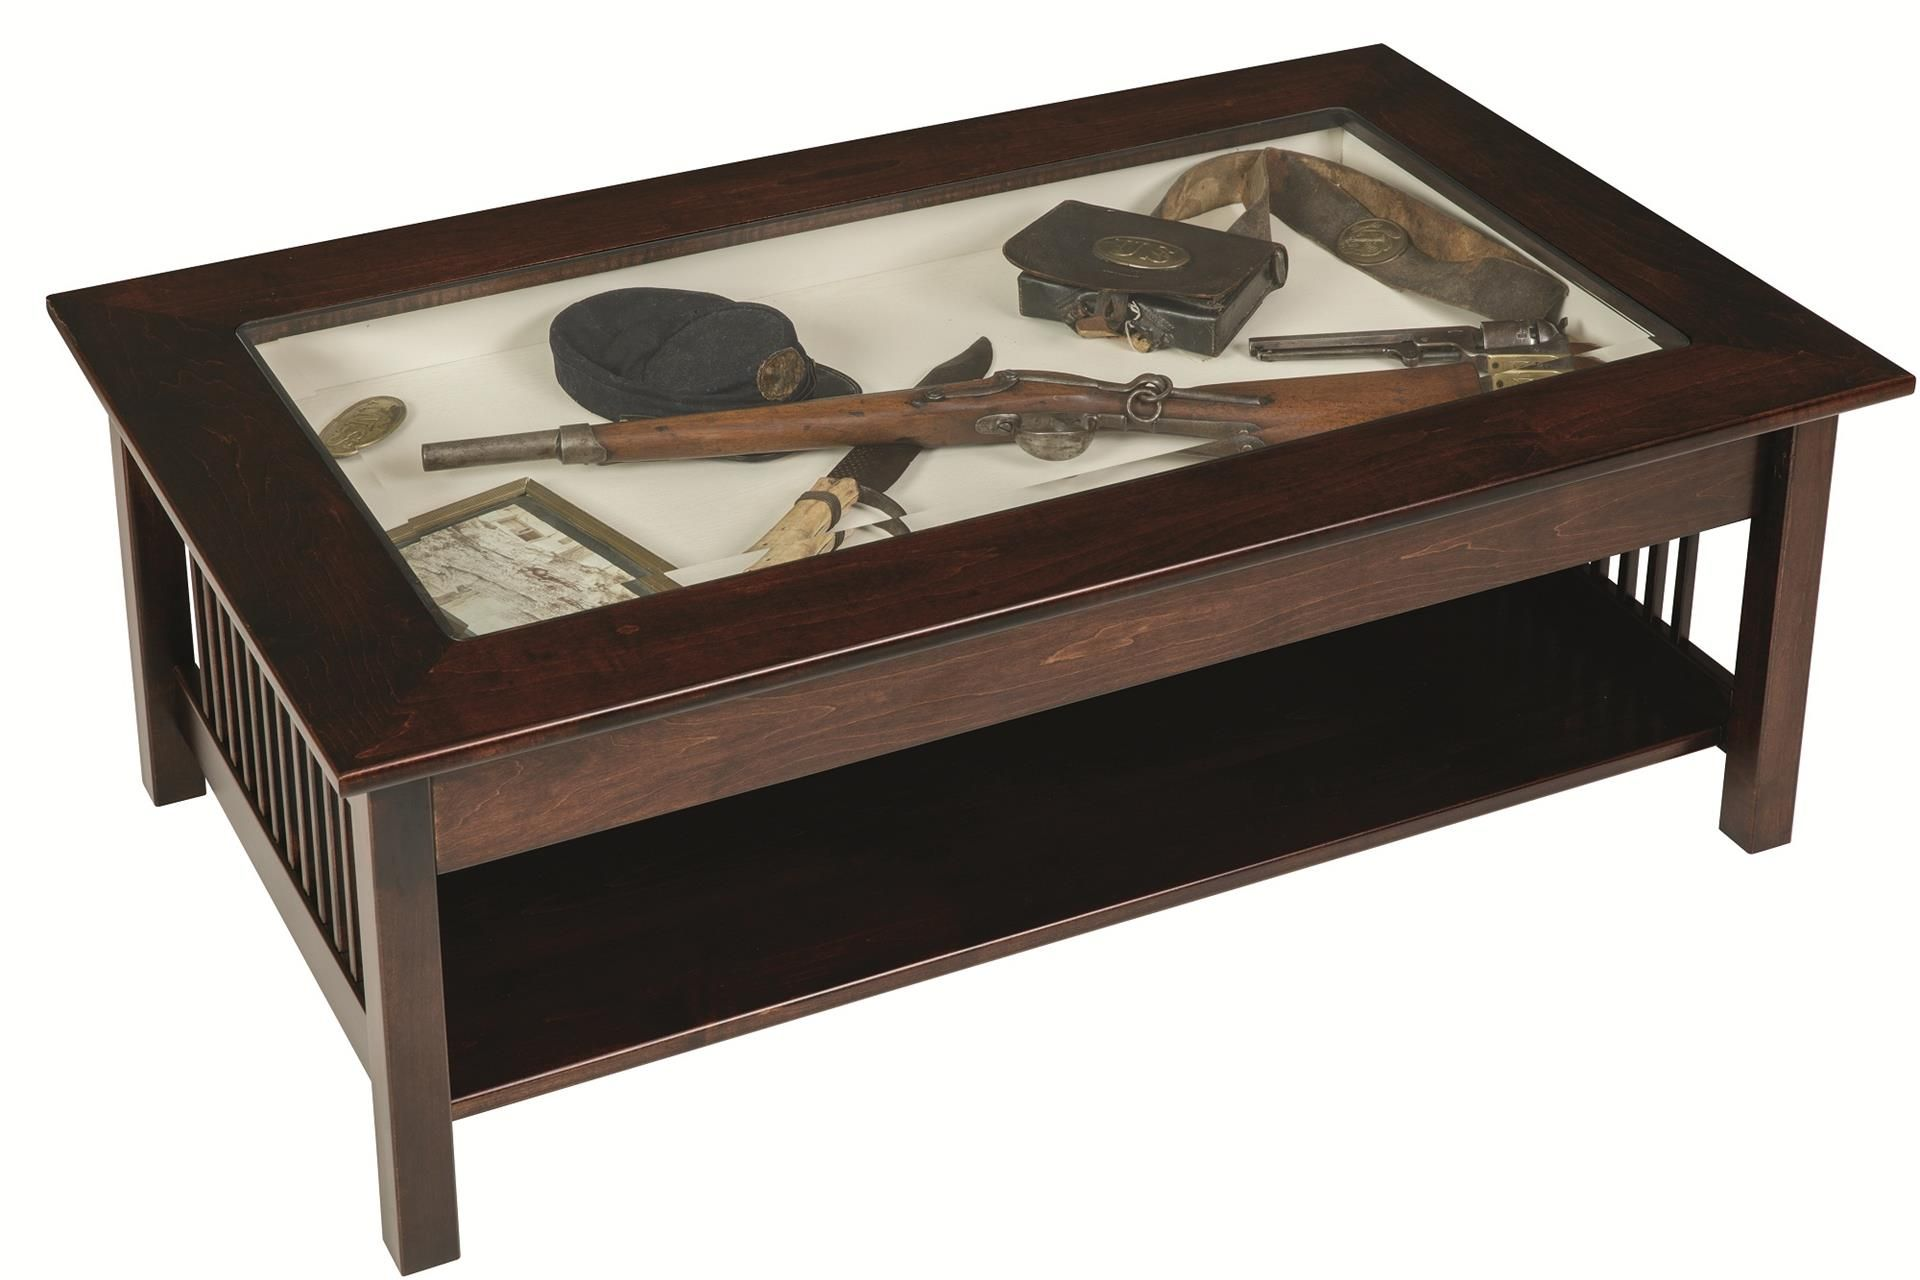 Amish Mission Large Coffee Table With Glass Top Display Display Coffee Table Shadow Box Coffee Table Coffee Table